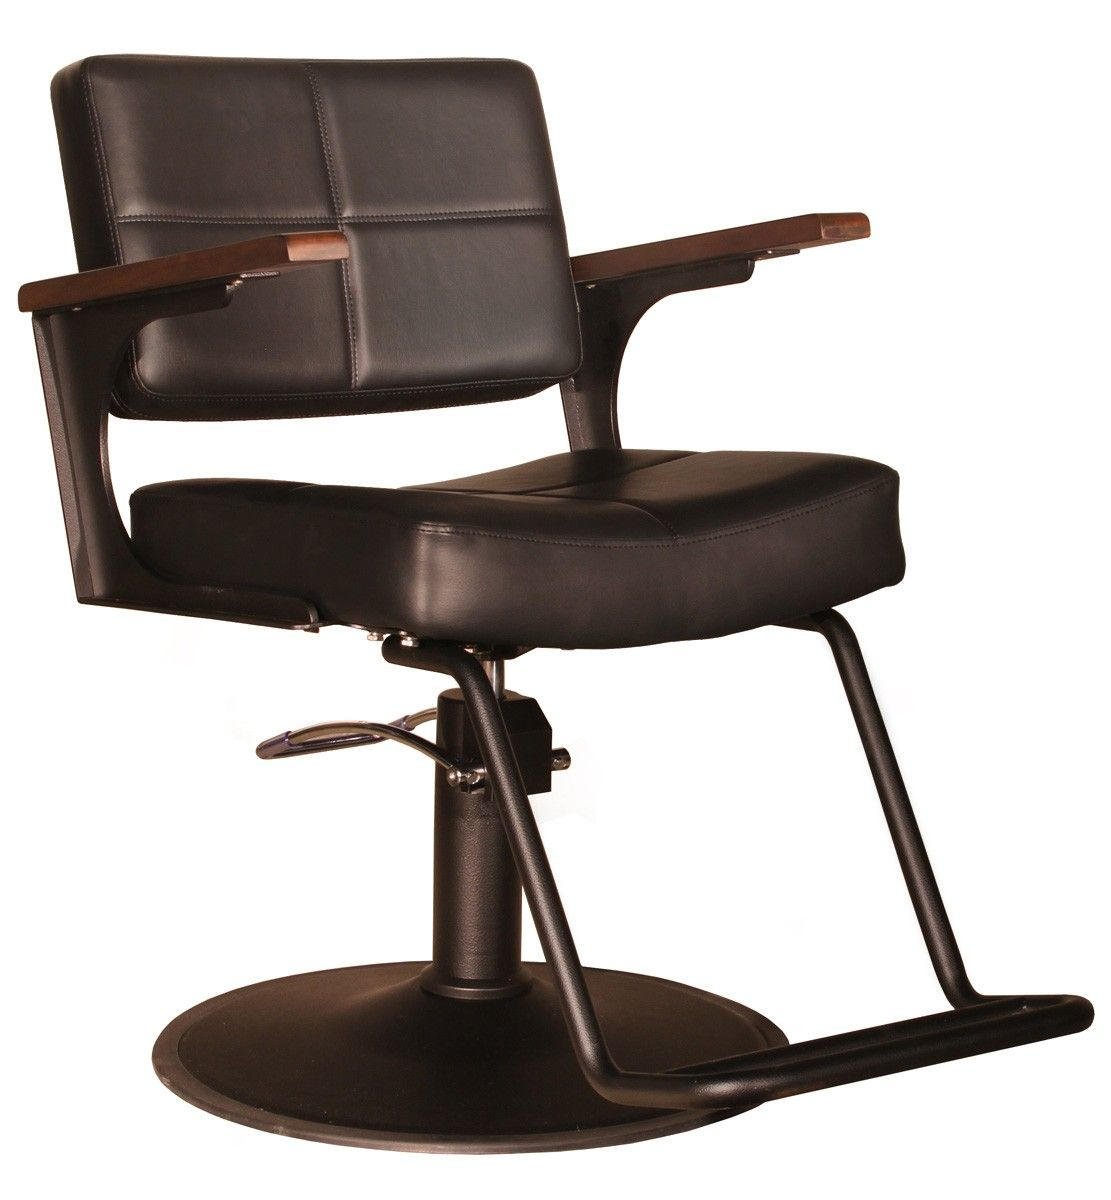 The Element blends mid-century modern and 21st-century industrial design into an impeccably built chair. What the Element in Espresso offers the stylist is the juxtaposition of workhorse practicality and elegantly graceful lines. It is constructed with an exposed and reinforced all steel, powder coated frame for unbelievable strength and indestructability. The wooden accented arm rests bring warmth to the chair and overstuffed seat cushions offer your clients the ultimate in seating…